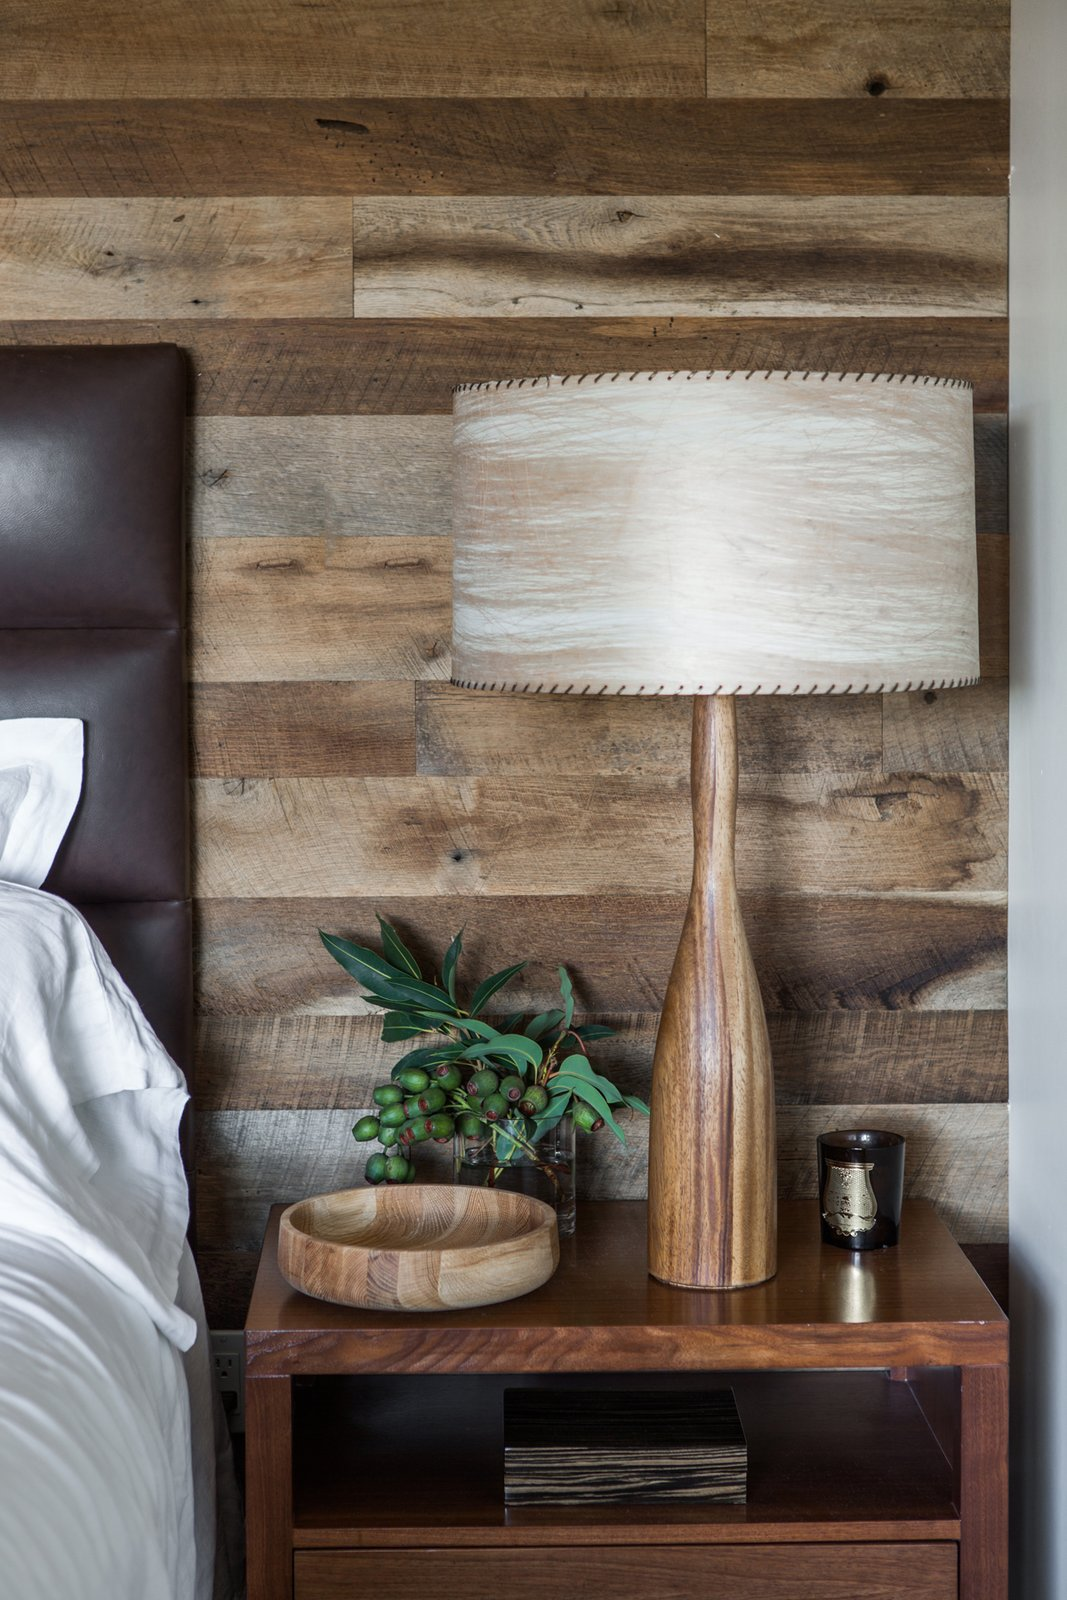 """A vintage wood lamp and turned bowl stands next to the bed. """"We wanted to incorporate elements used in residential homes,"""" Hollis says of the eclectic medley of accessories and furnishings in the space. """"These would be items that you would collect over time. They don't exactly match, but they all work together—they create a relaxed casual environment while still elevating the interior and amenities to what you expect from a world-class luxury property."""" Tagged: Bedroom, Bed, Table Lighting, and Night Stands.  60+ Modern Lighting Solutions by Dwell from A Serene Hotel in Carmel, California"""